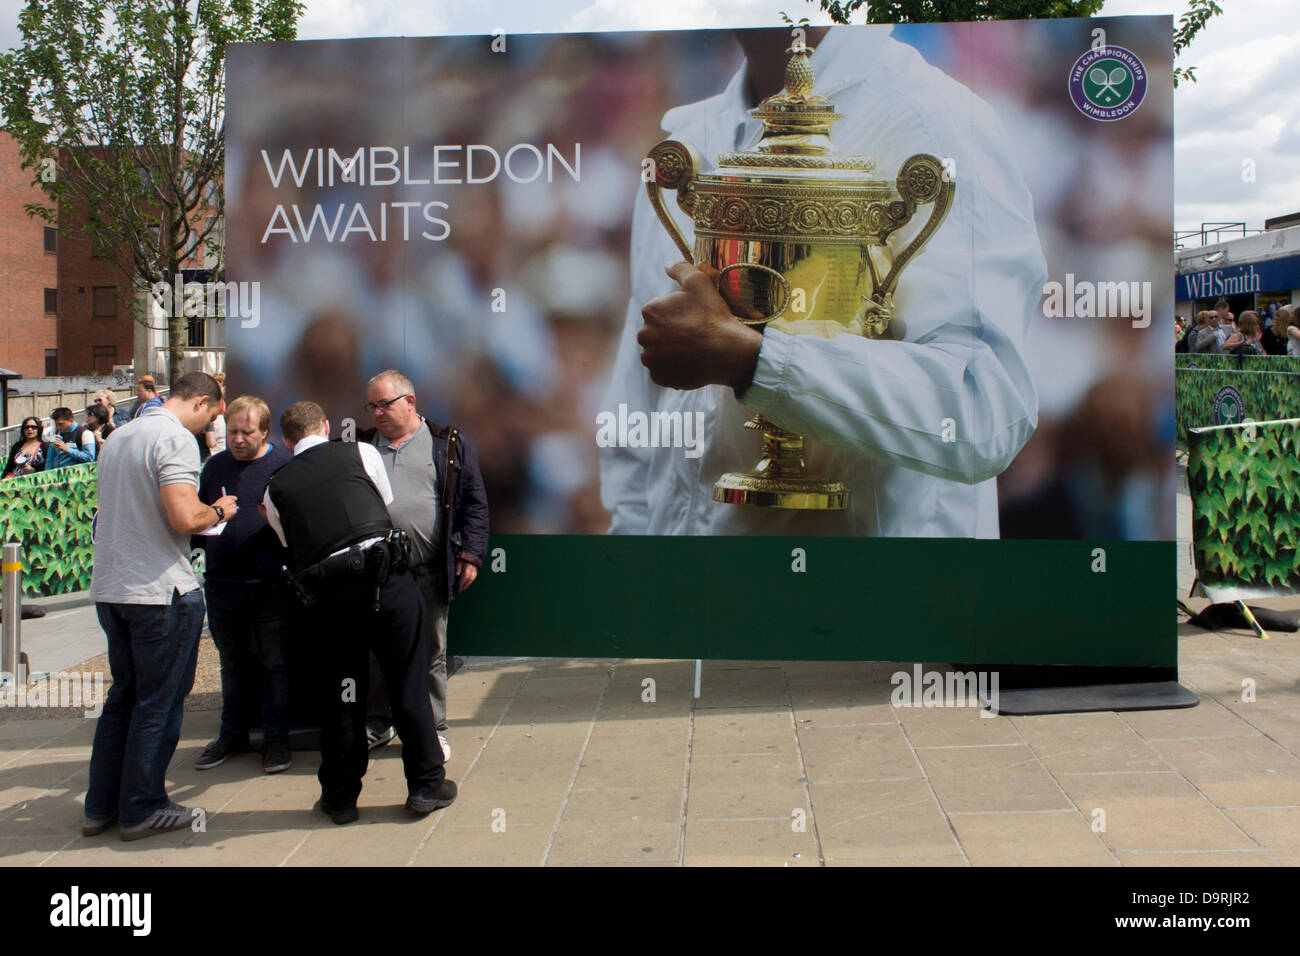 Wimbledon, England, 25th June 2013 - Day 2 of the annual lawn tennis championships and police officers question - Stock Image